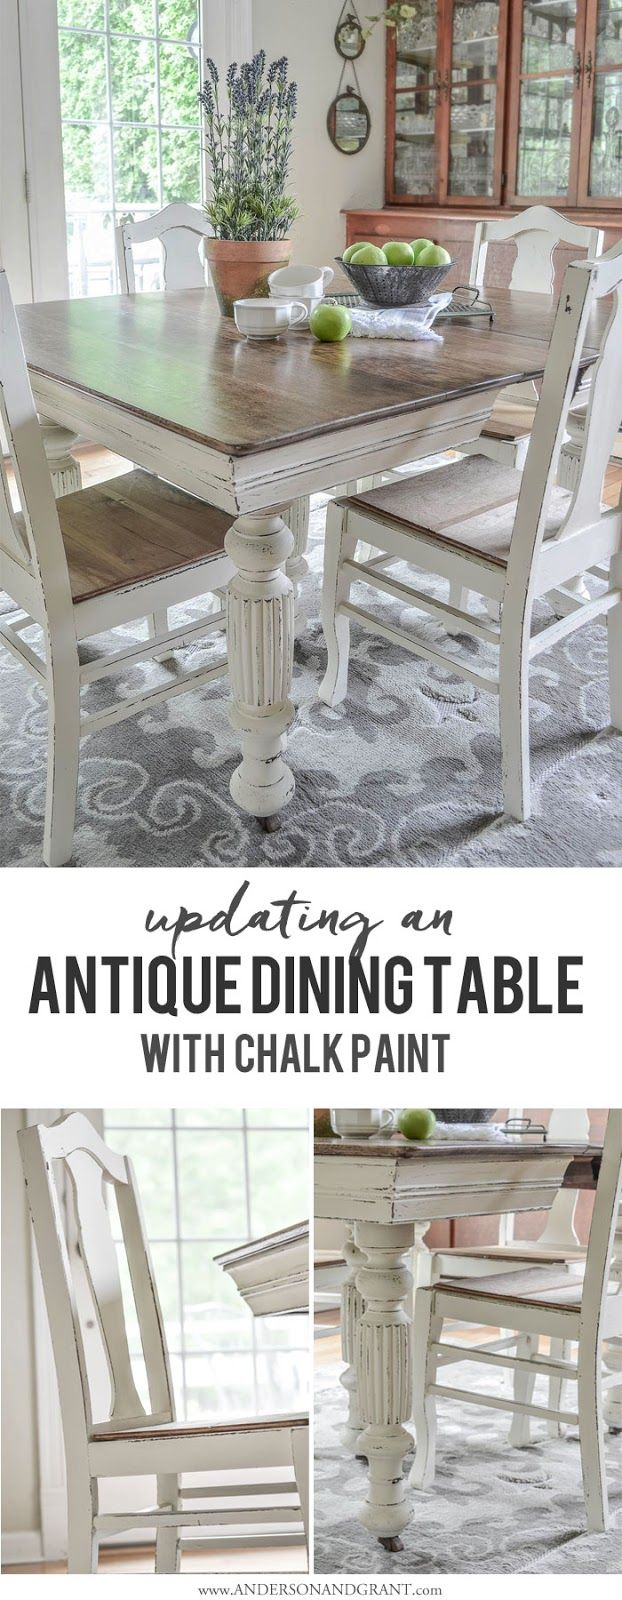 Antique Dining Table Updated with Chalk Paint | Vorher nachher ...